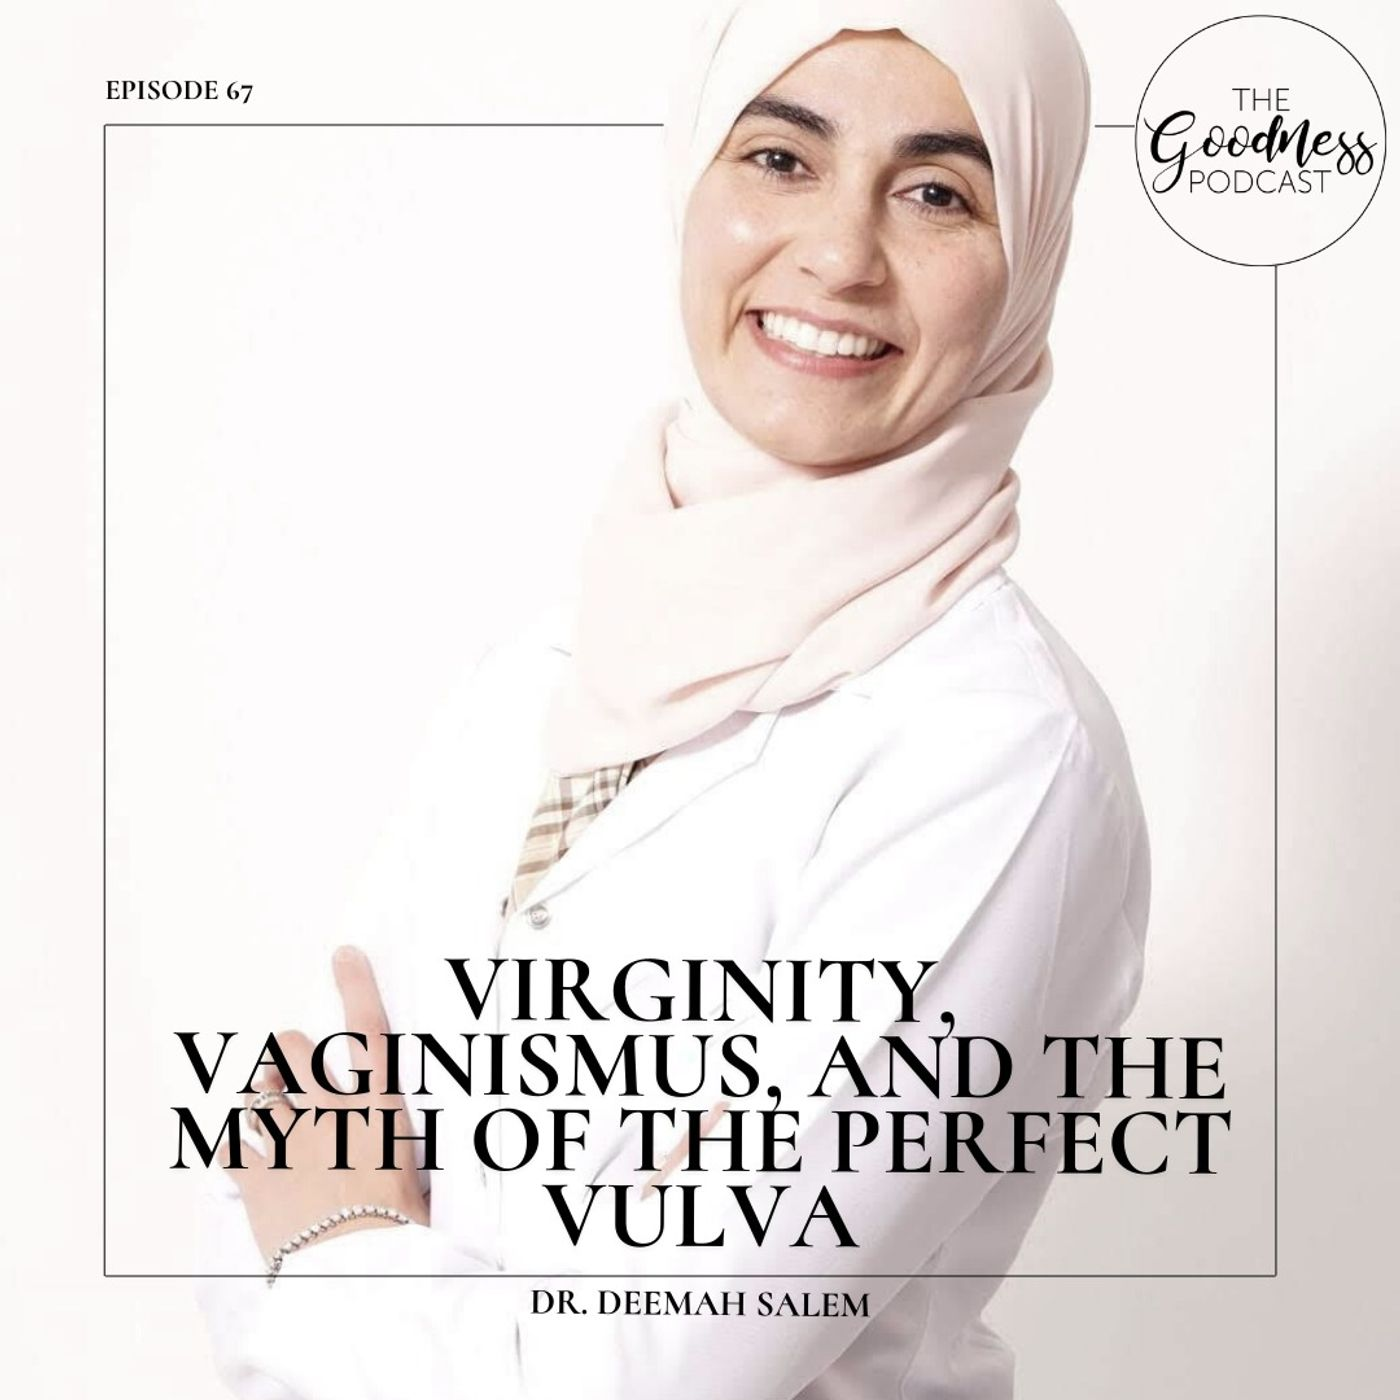 Dr. Deemah Salem: Virginity, Vaginismus, and the Myth of the Perfect Vulva